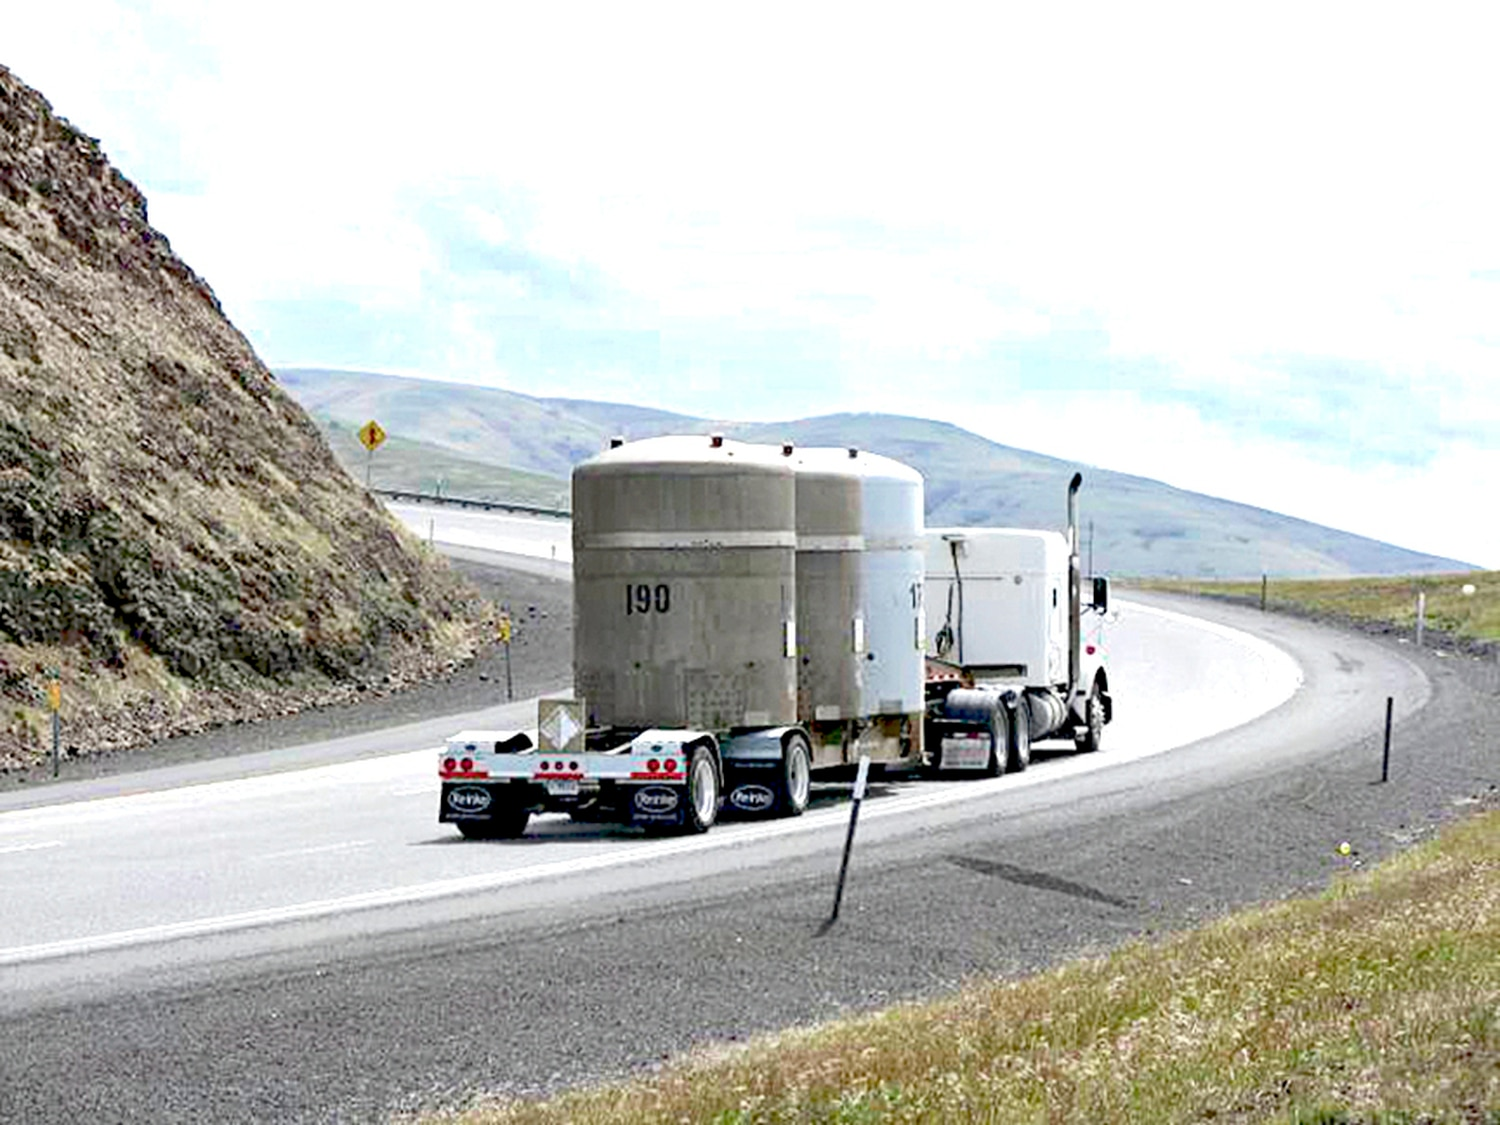 A transuranic waste shipment travels on an approved shipping route to the Waste Isolation Pilot Plant.